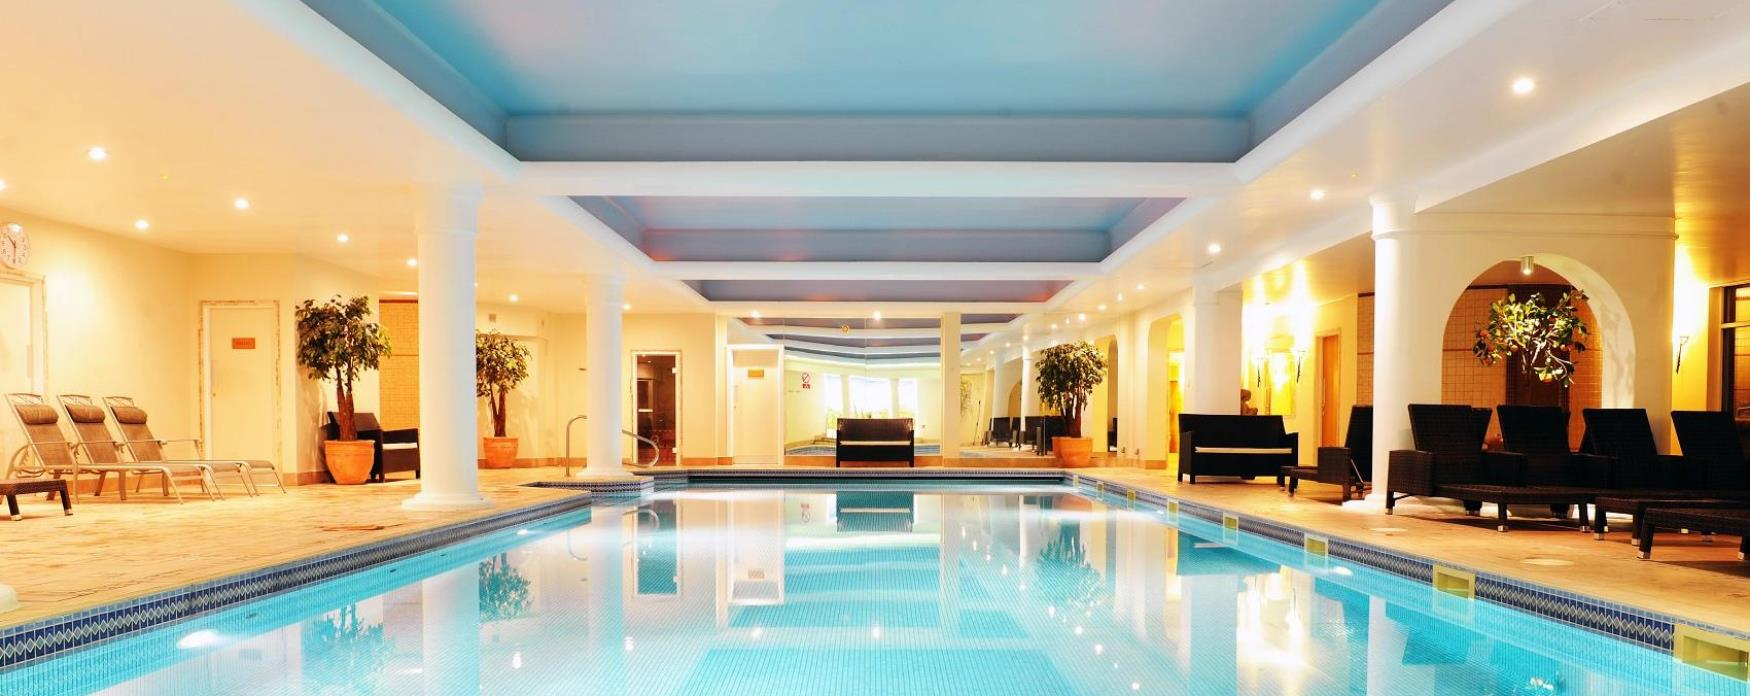 The Swimming pool at Stoke By Nayland Hotel and Spa